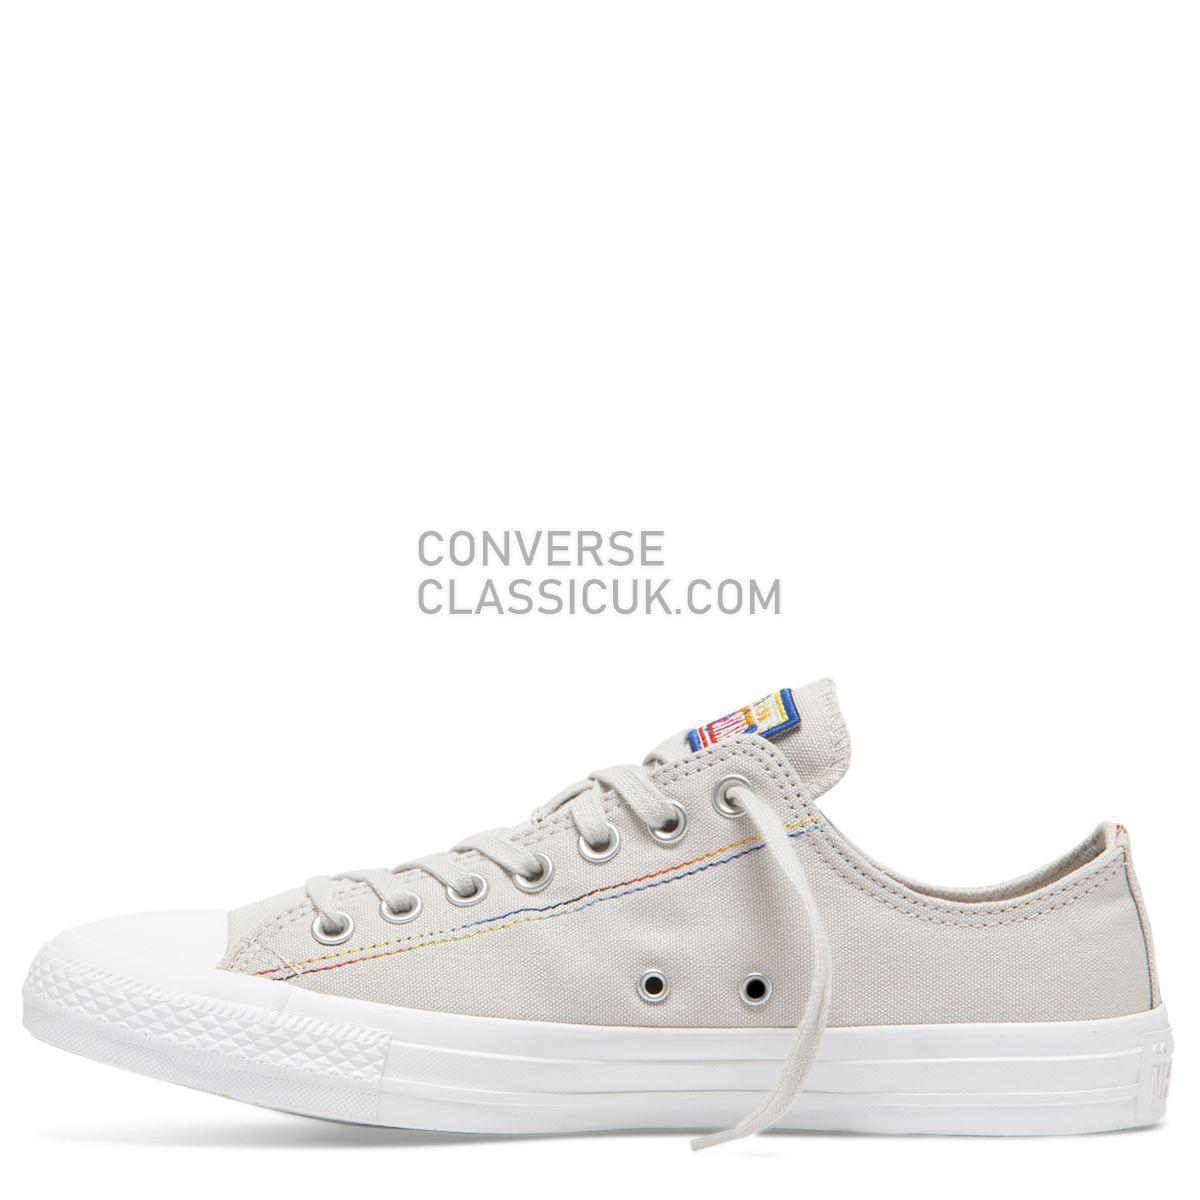 Converse Chuck Taylor All Star Rainbow Low Top Pale Putty Mens Womens Unisex 165428 Pale Putty/White/Hyper Royal Shoes